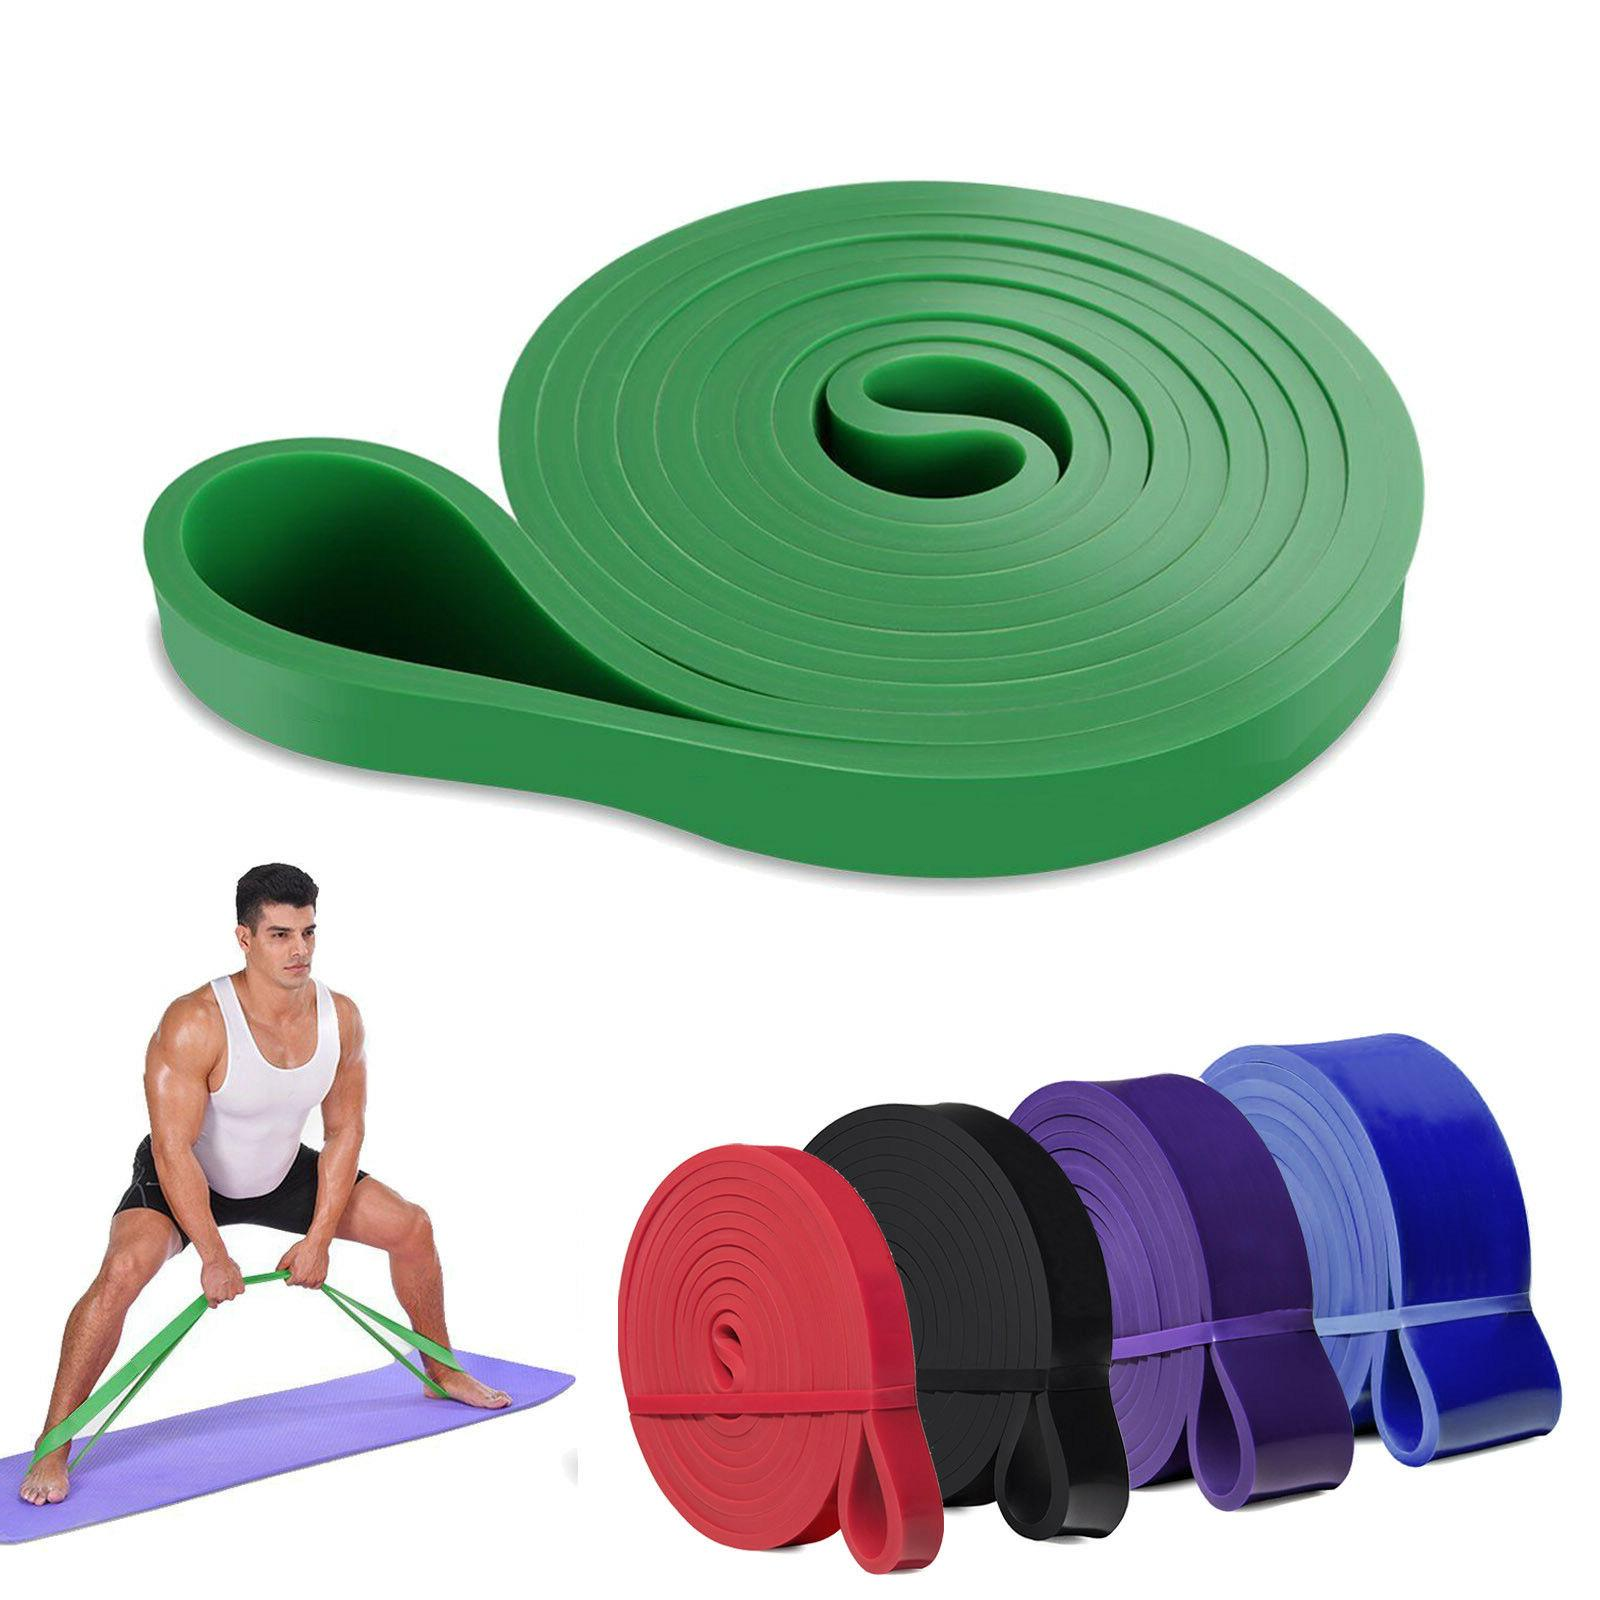 light to extremely heavy resistance bands f